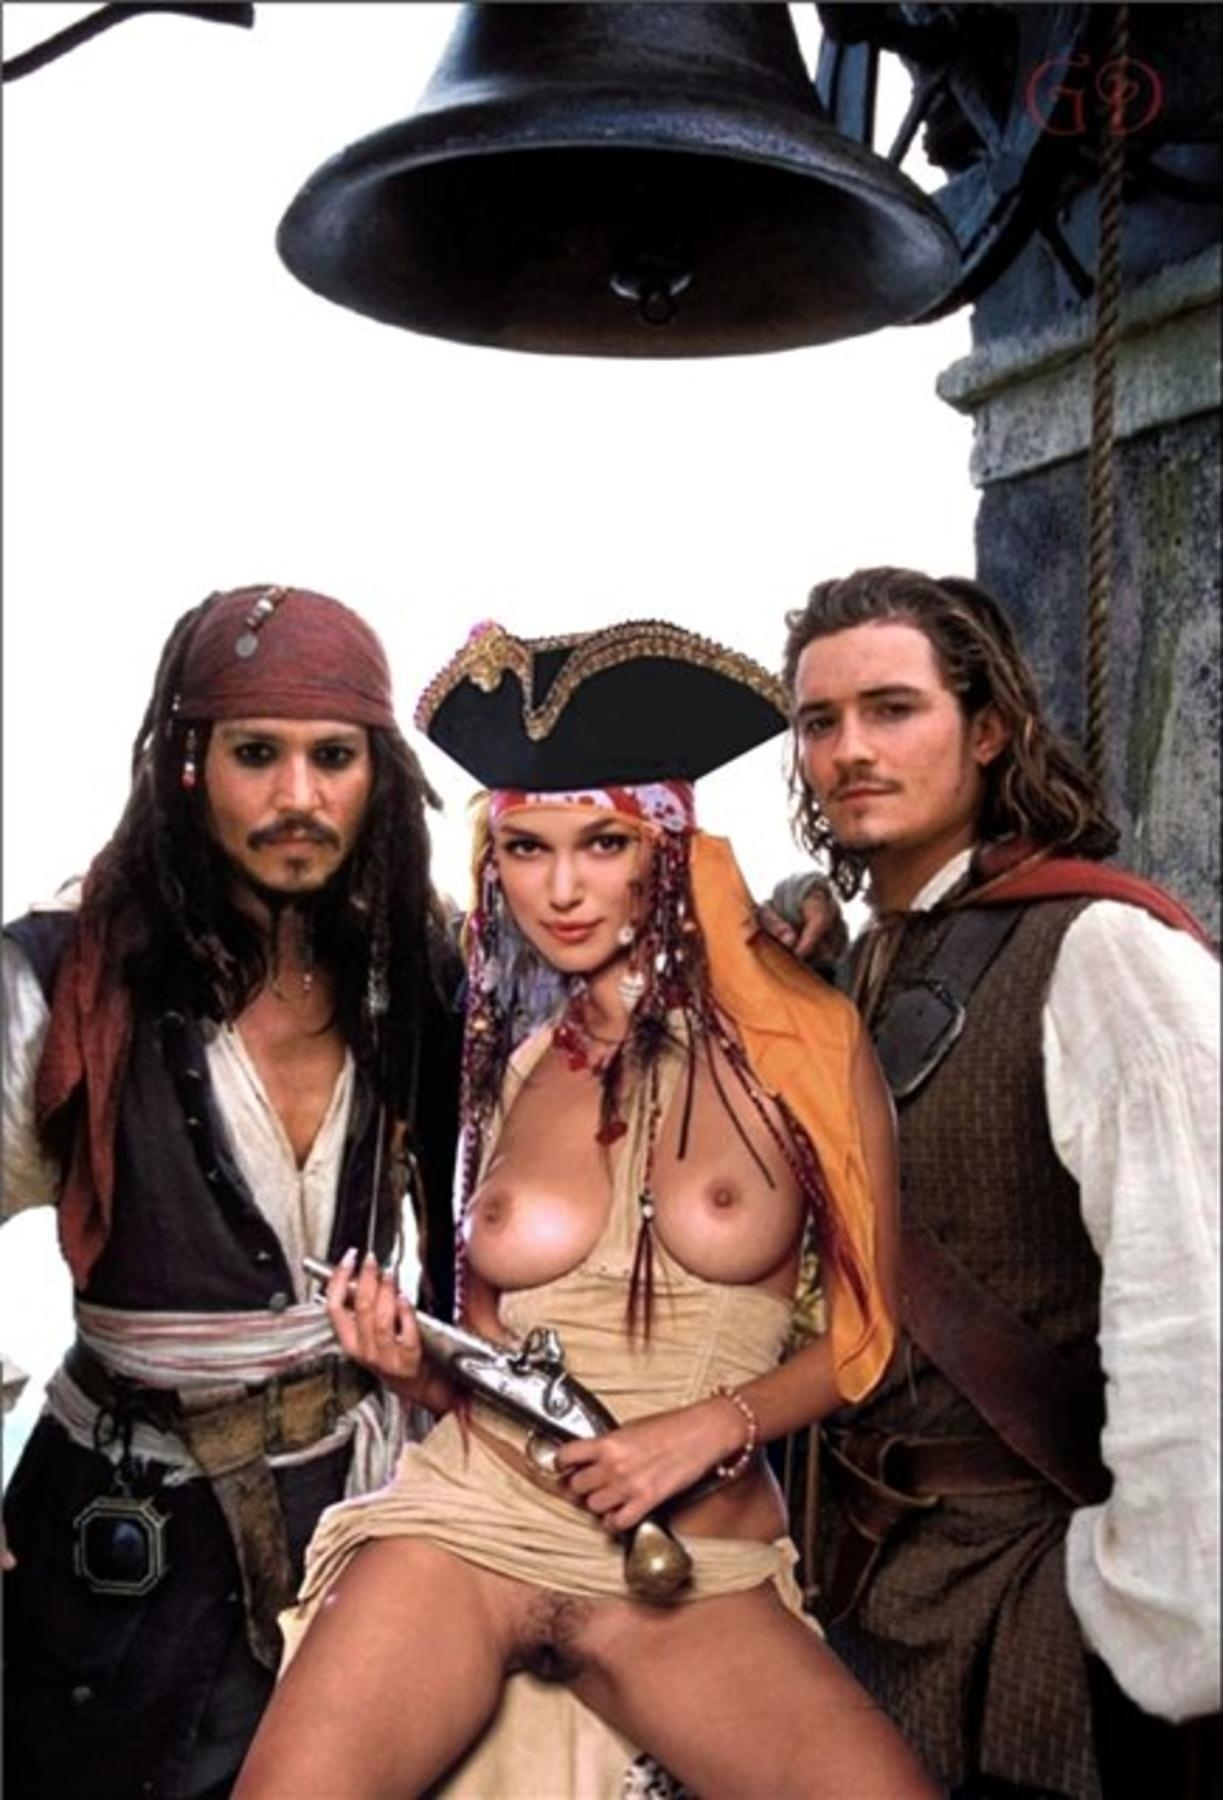 Pirates of caribbean porno and pussy photos porn pictures